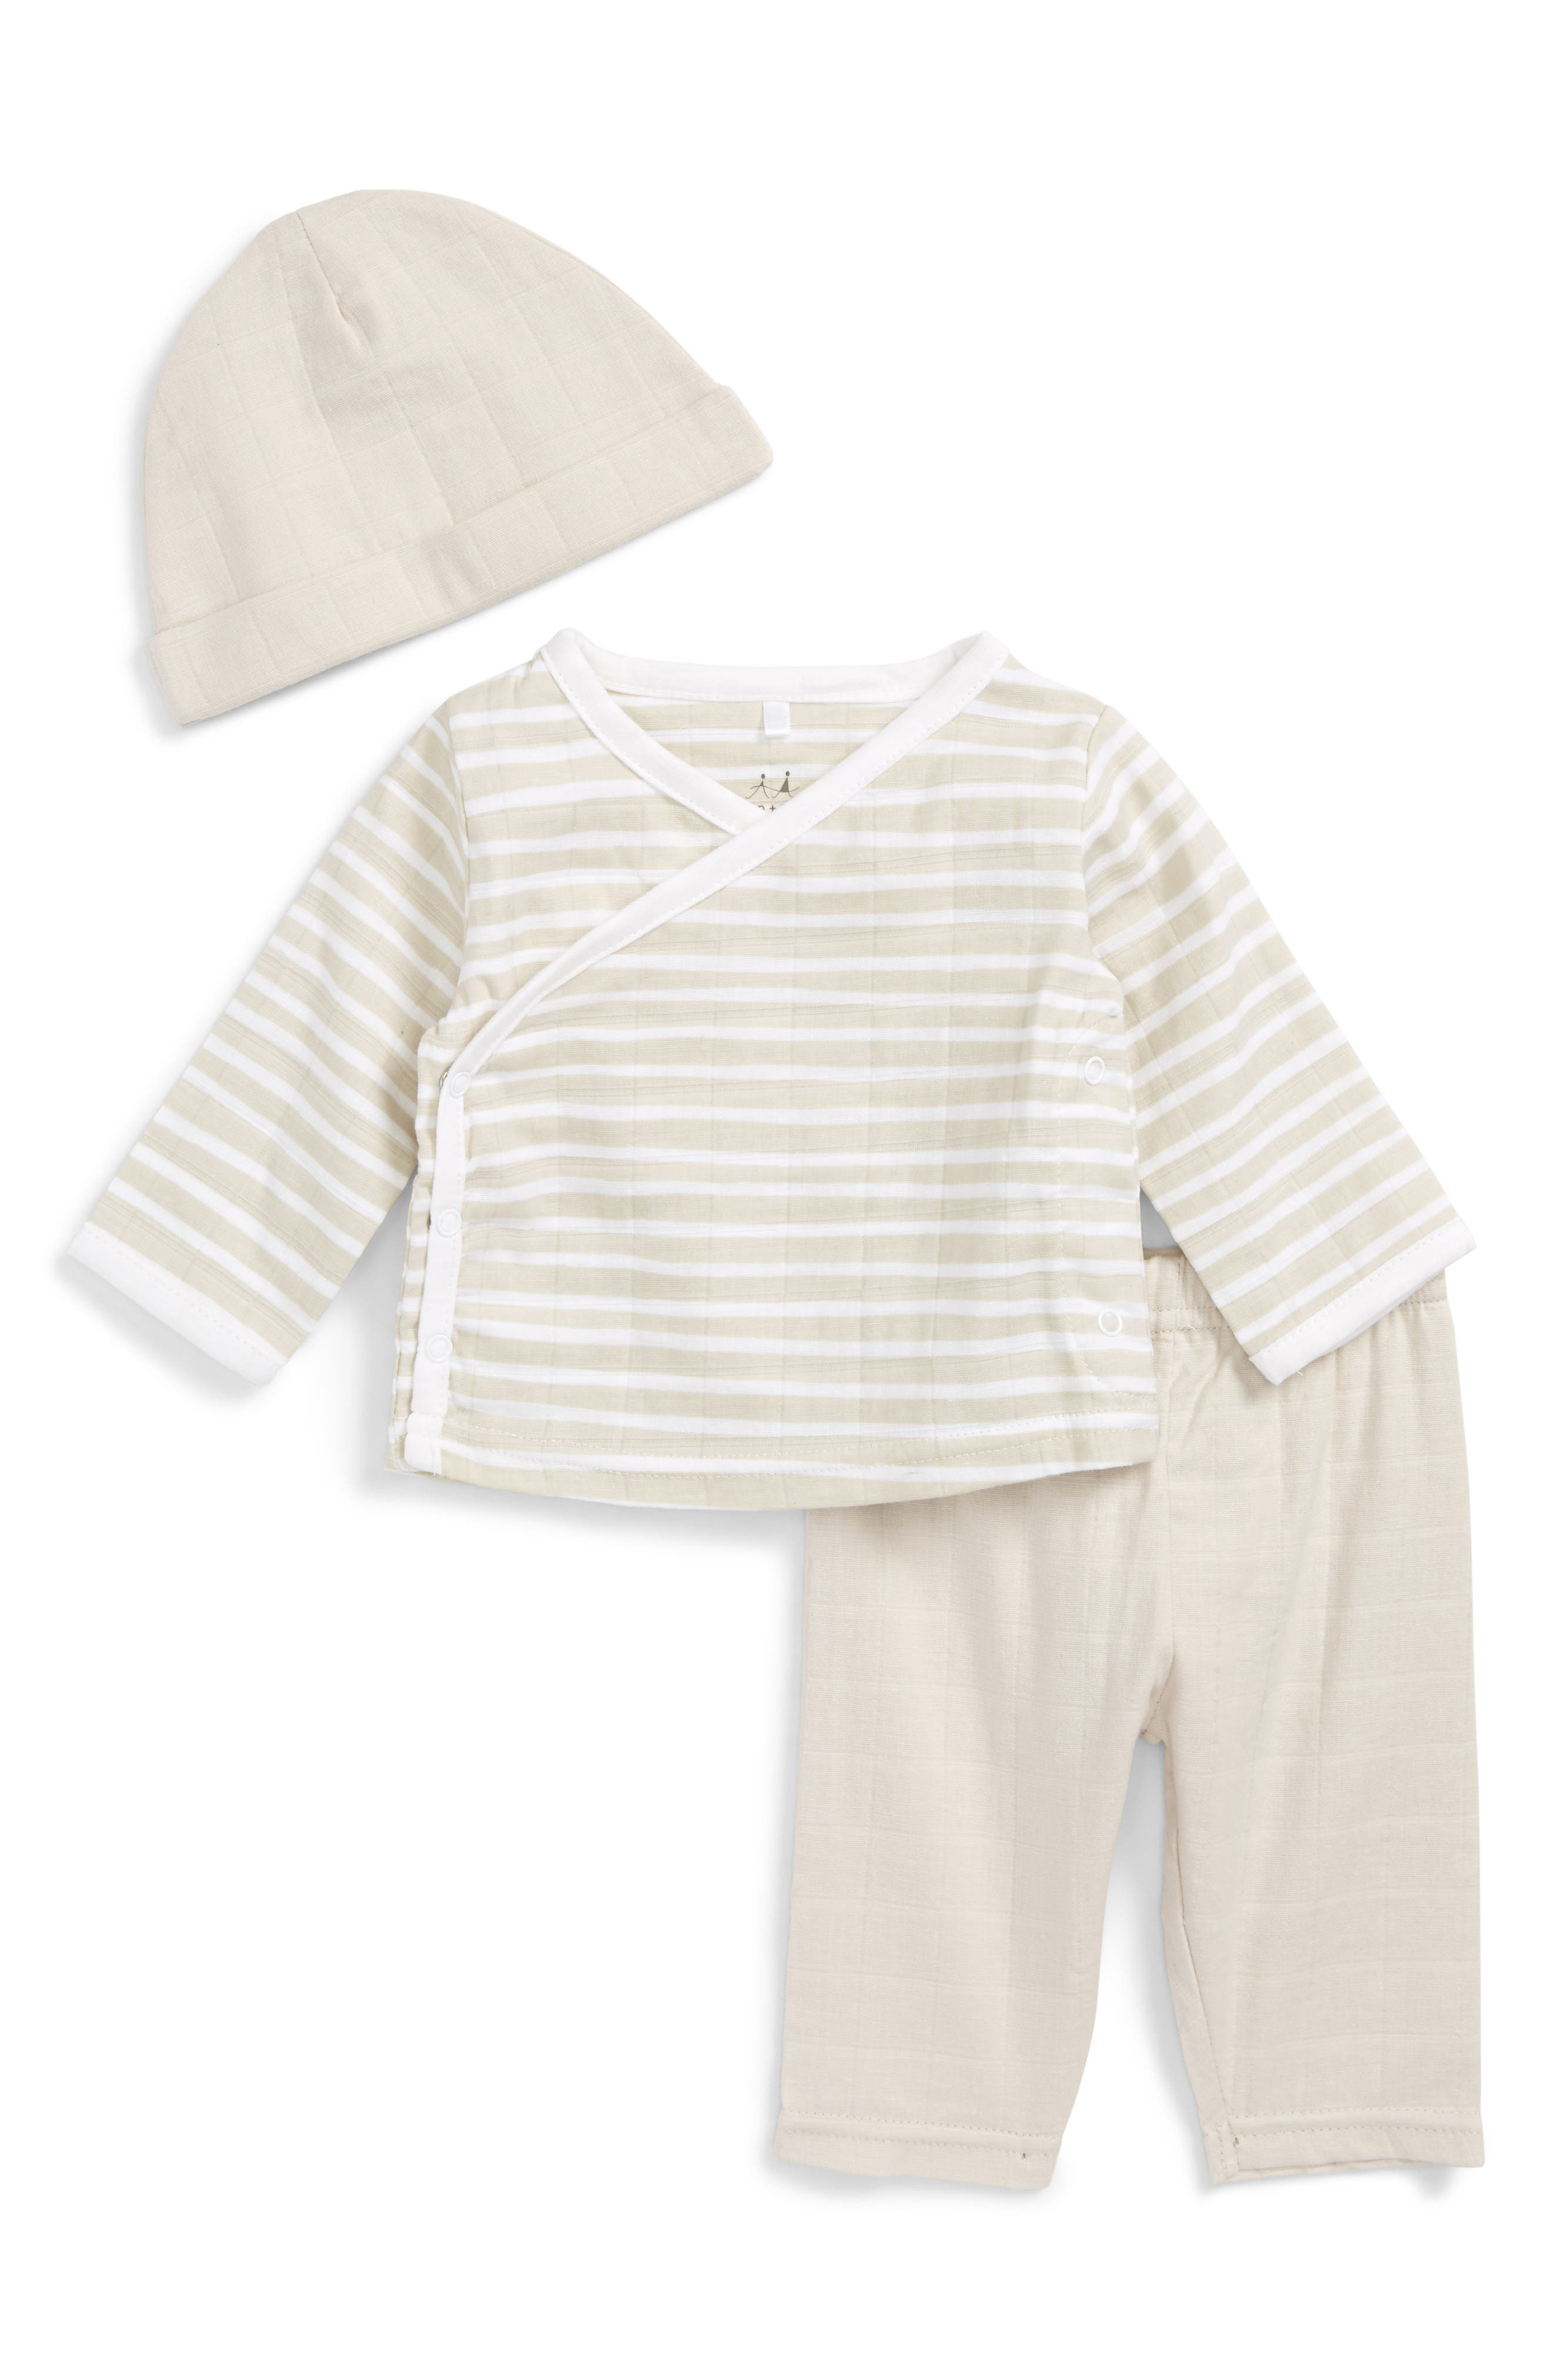 Main Image - aden + anais Quilted Shirt, Pants & Beanie Set (Baby)